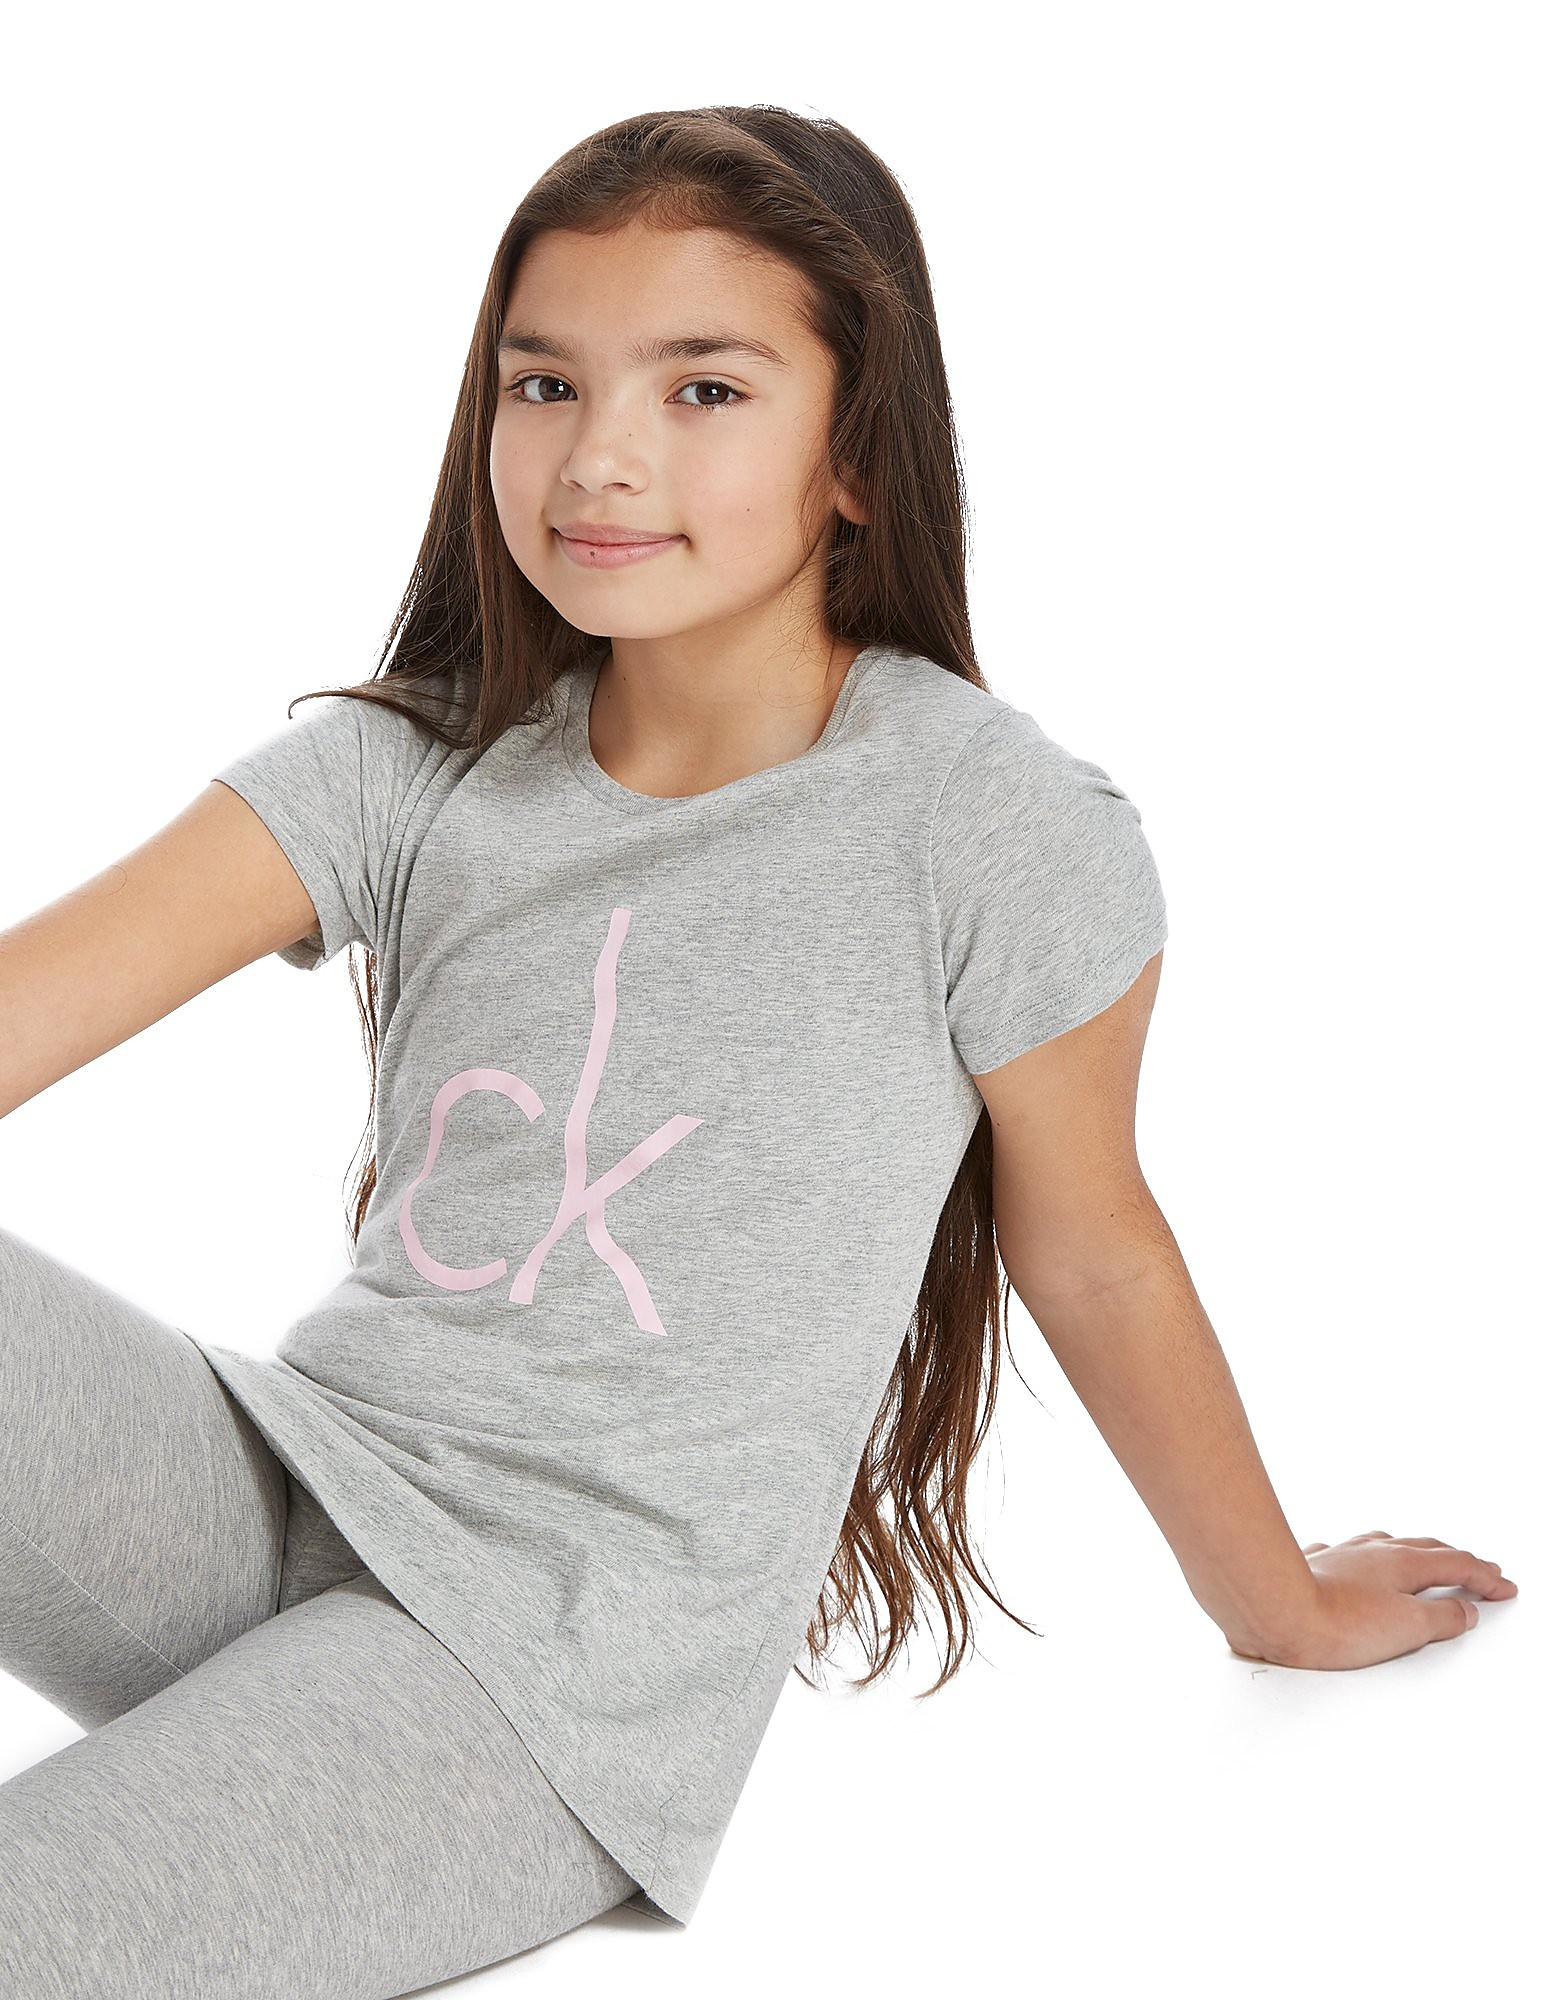 Calvin Klein Girls' 2 Pack Modern Cotton T-Shirts Junior